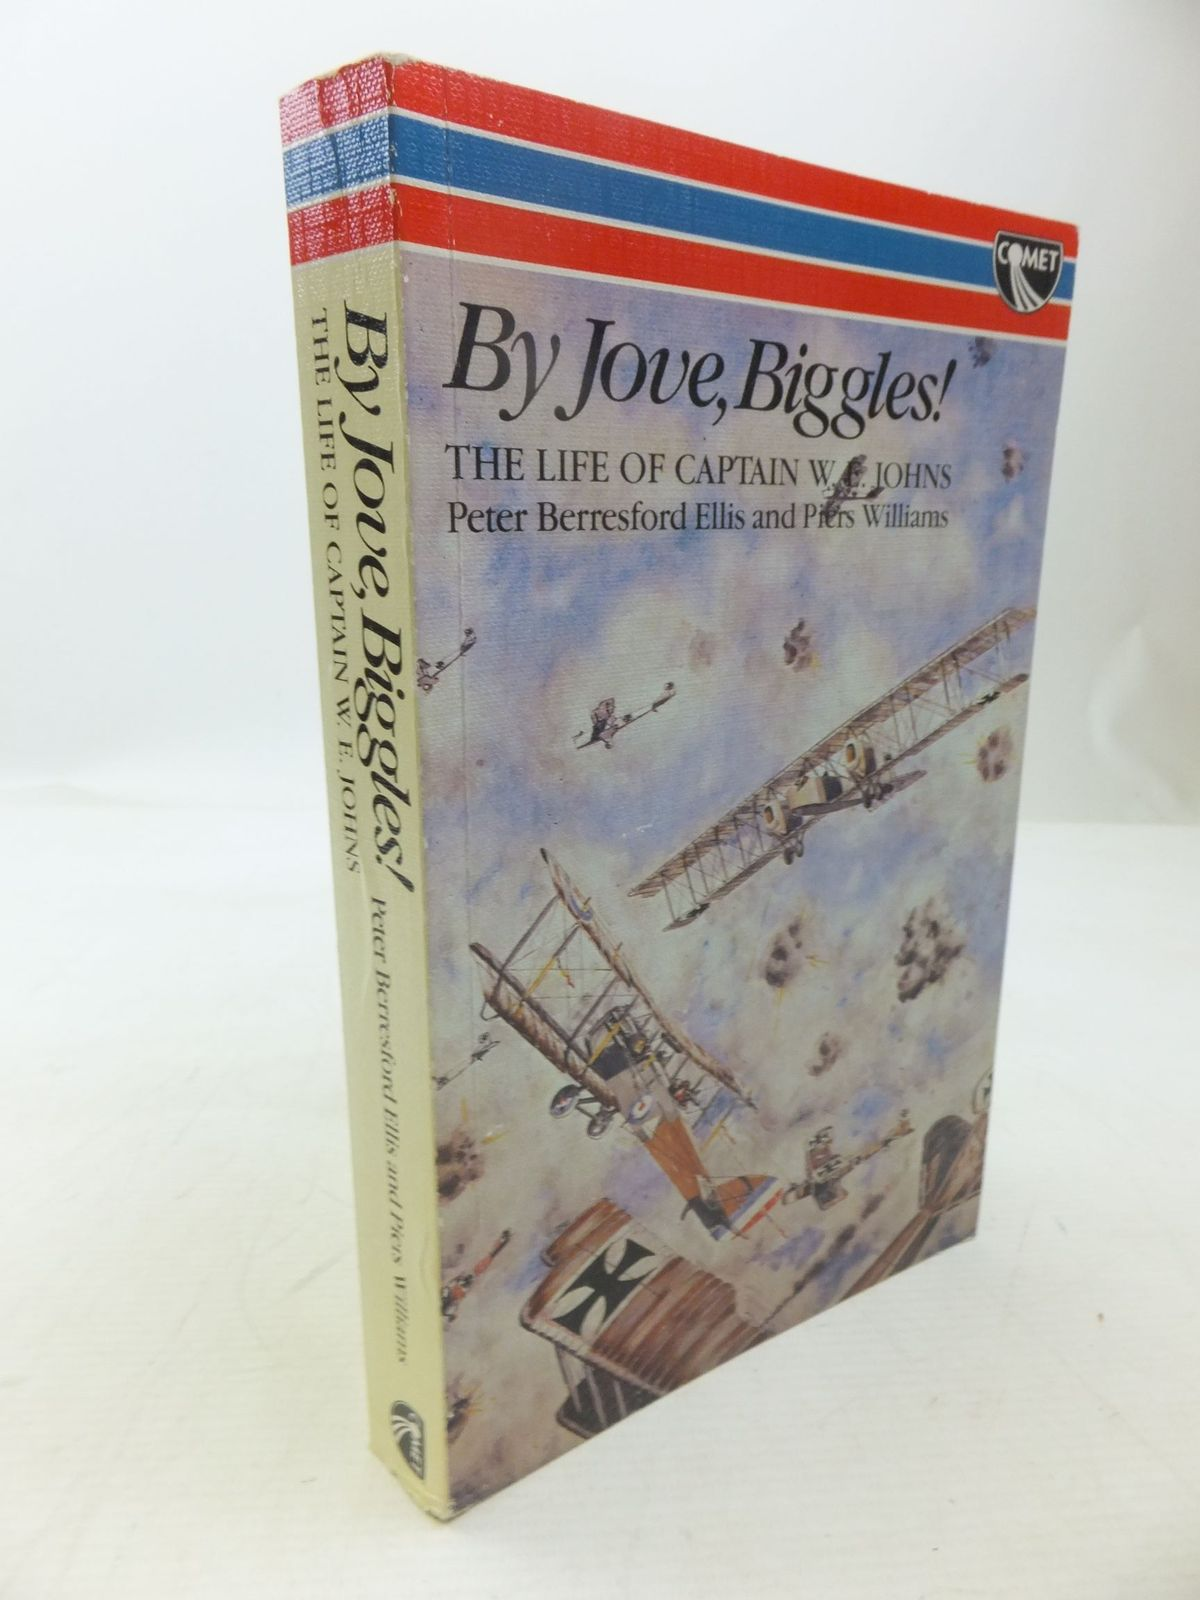 Photo of BY JOVE, BIGGLES! written by Ellis, Peter Berresford Williams, Piers published by W.H.Allen (STOCK CODE: 2118520)  for sale by Stella & Rose's Books